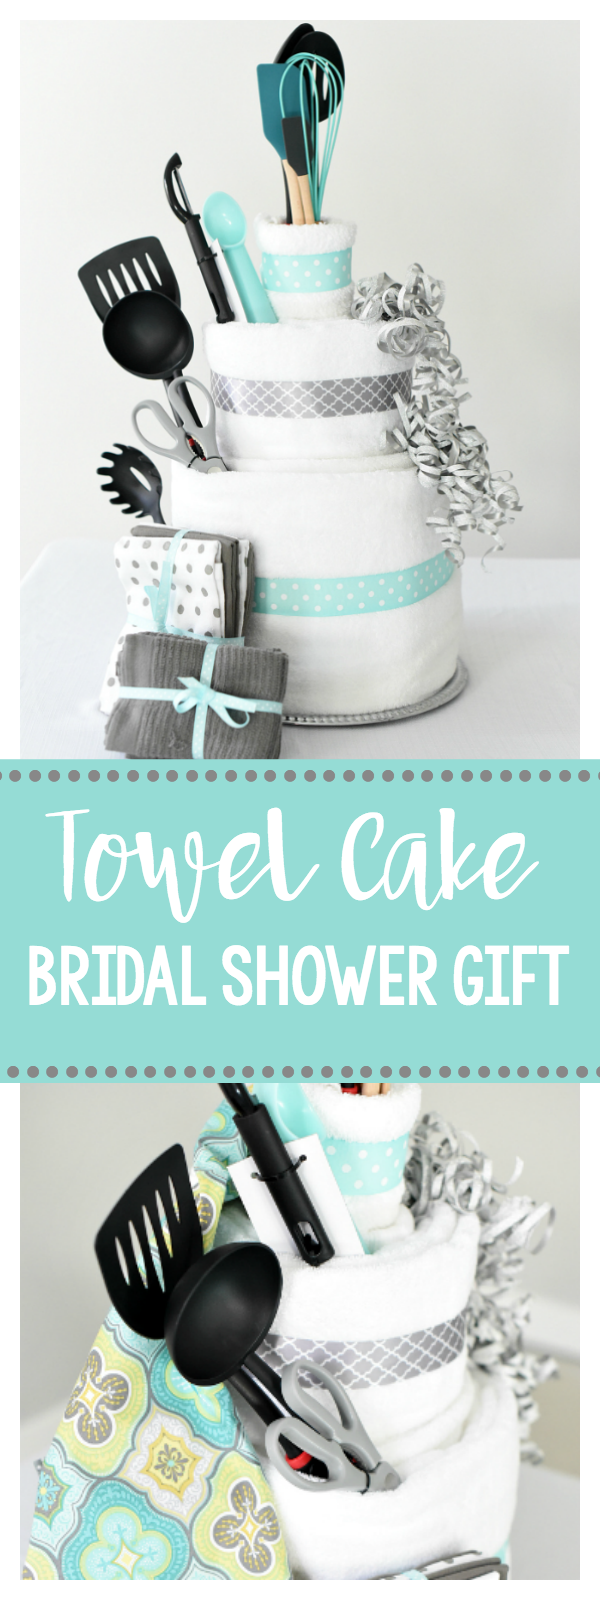 towel cake a fun diy bridal shower gift that she will love